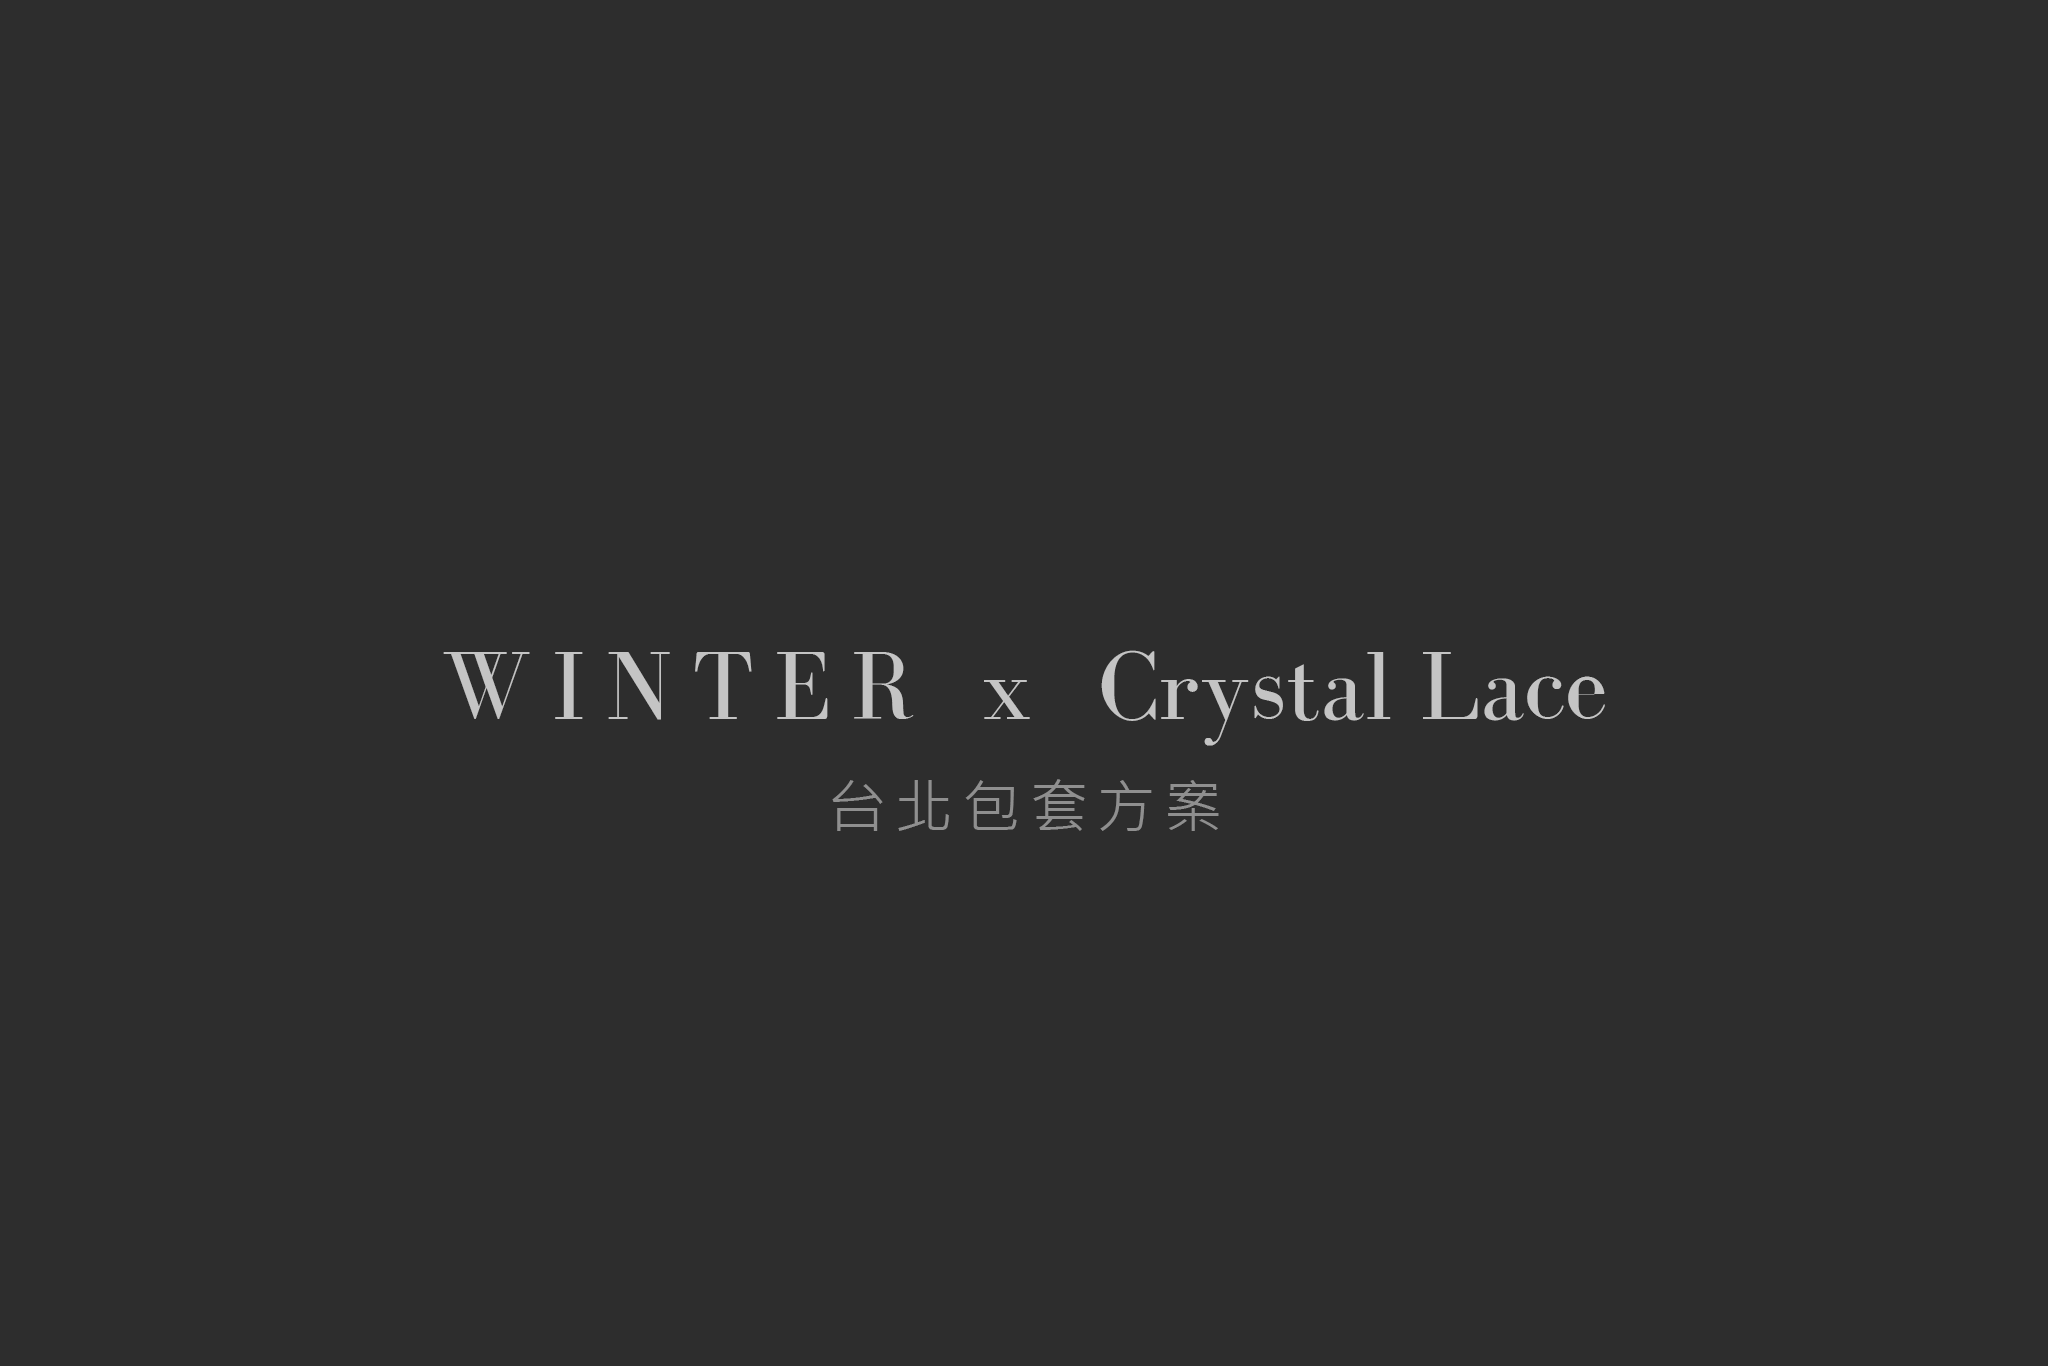 WINTER x Crystal Lace